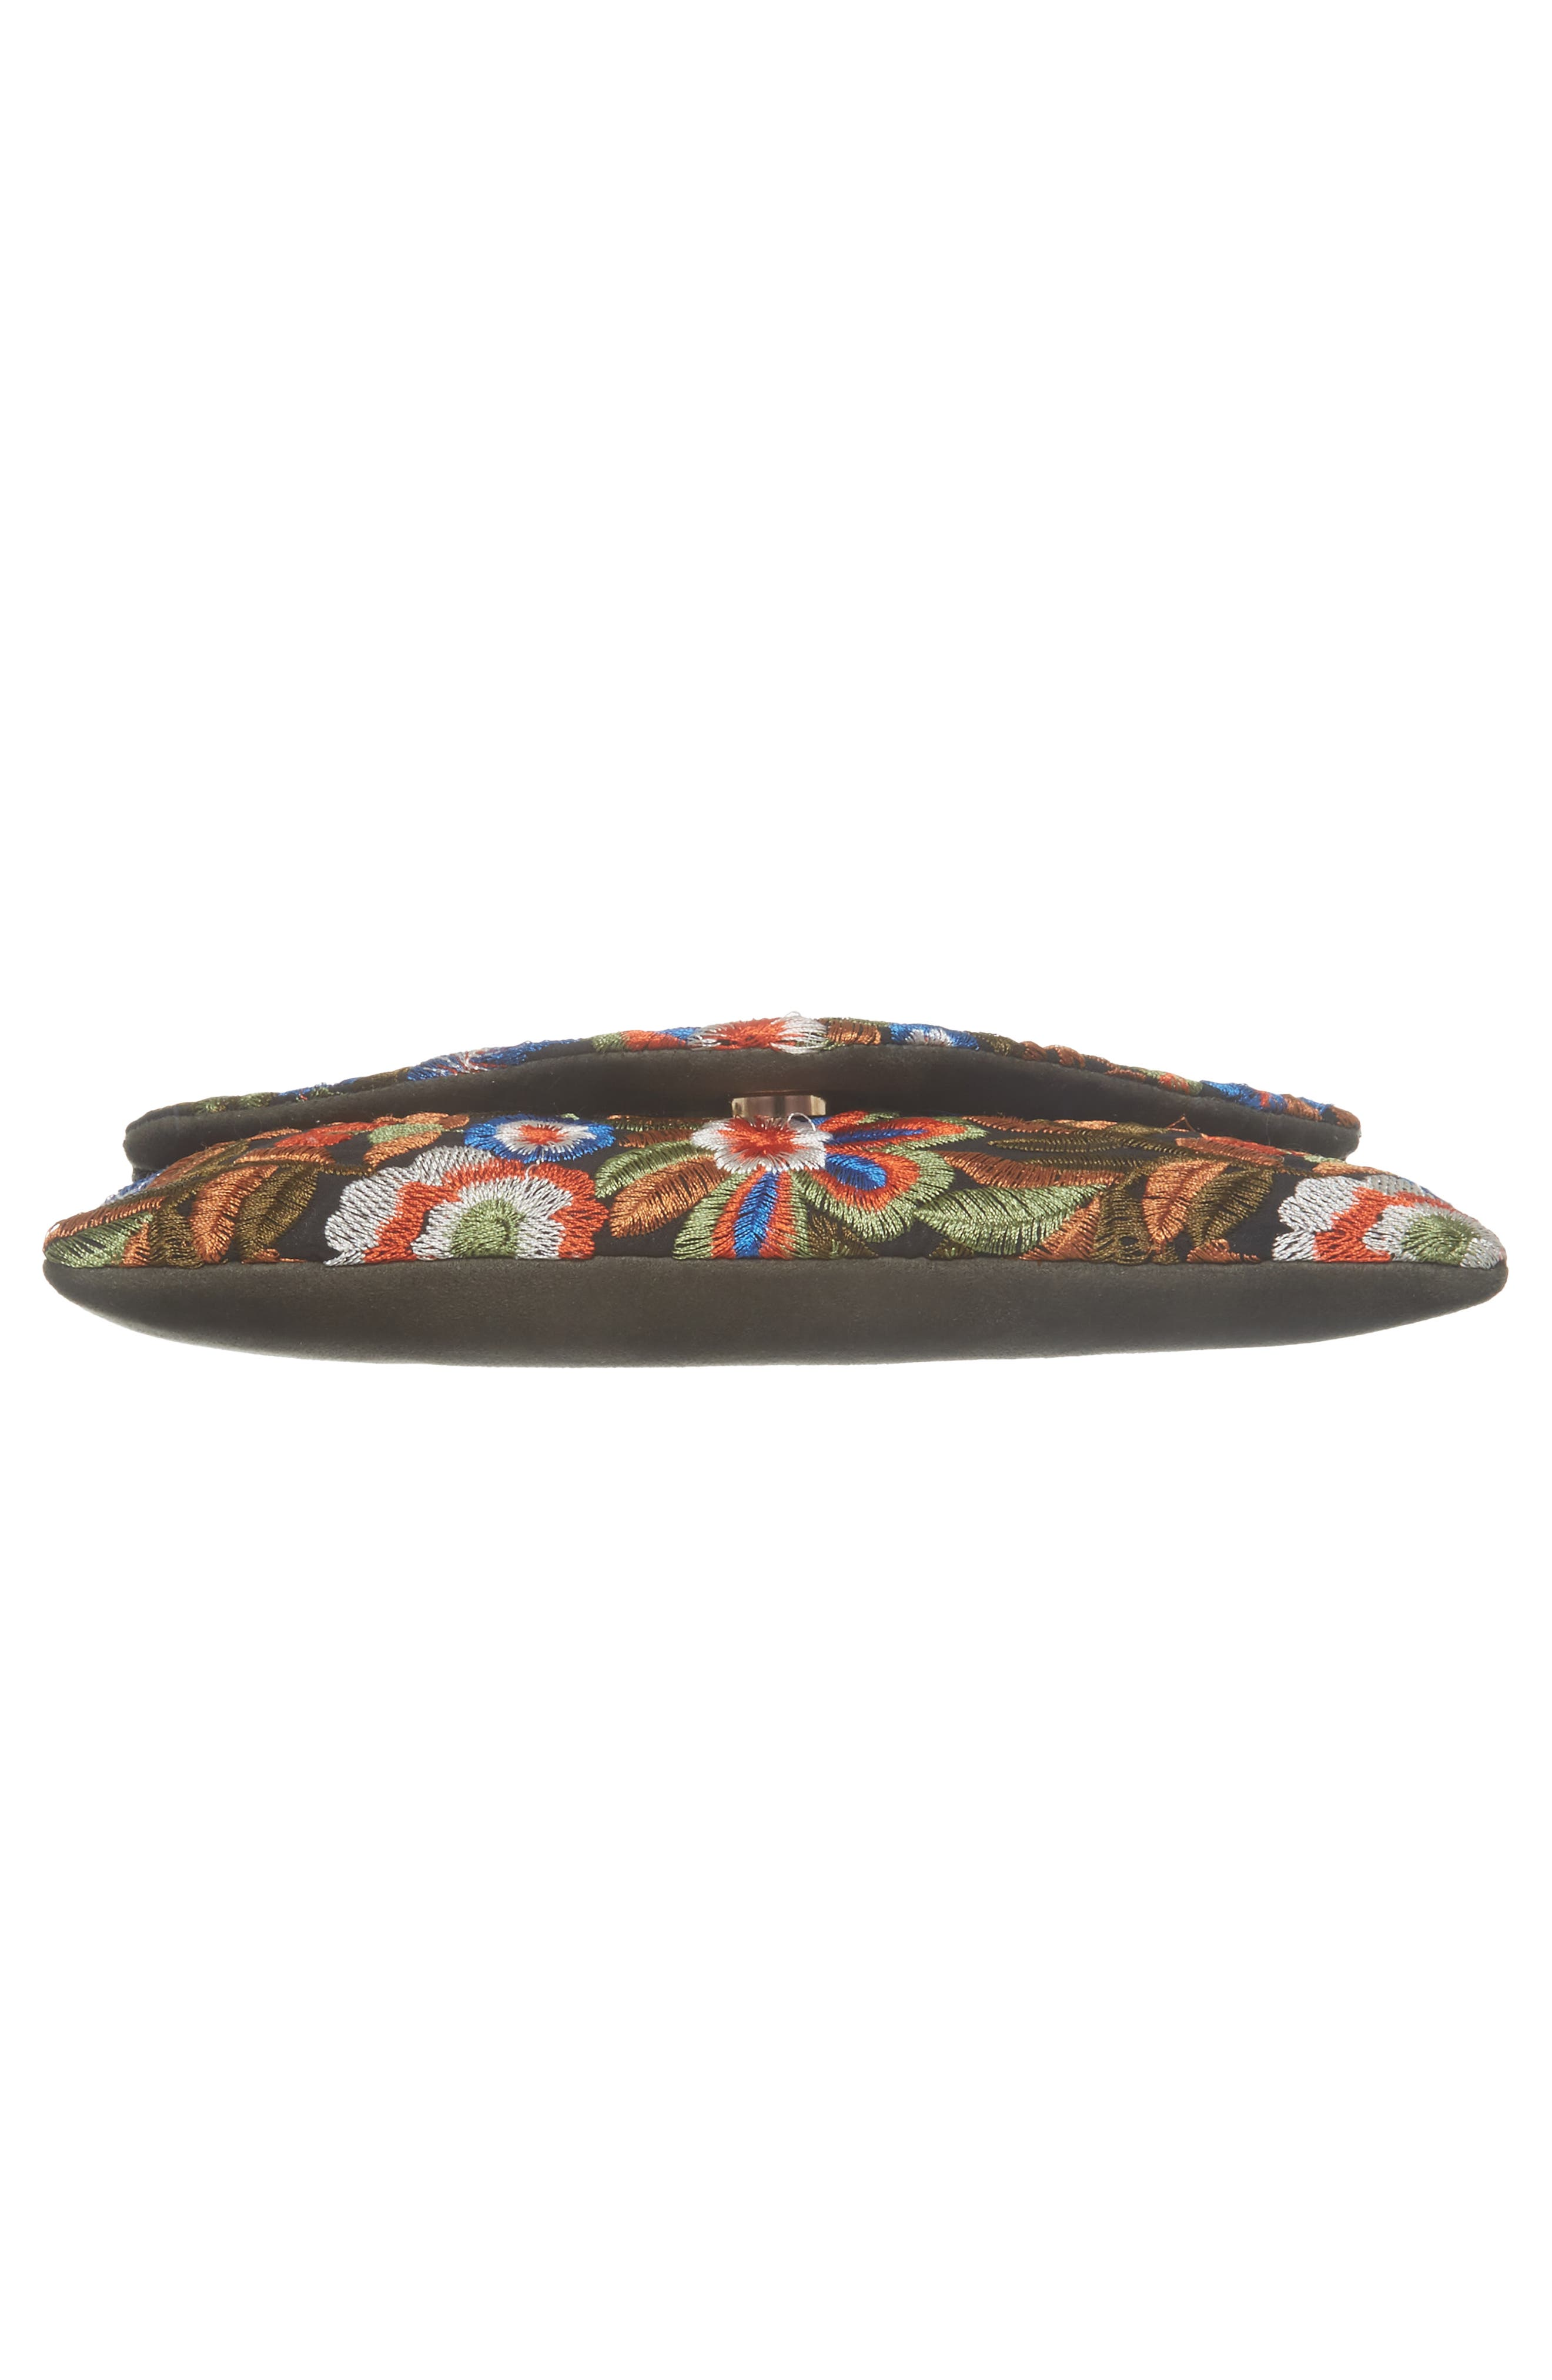 Embroidered Envelope Clutch,                             Alternate thumbnail 6, color,                             461